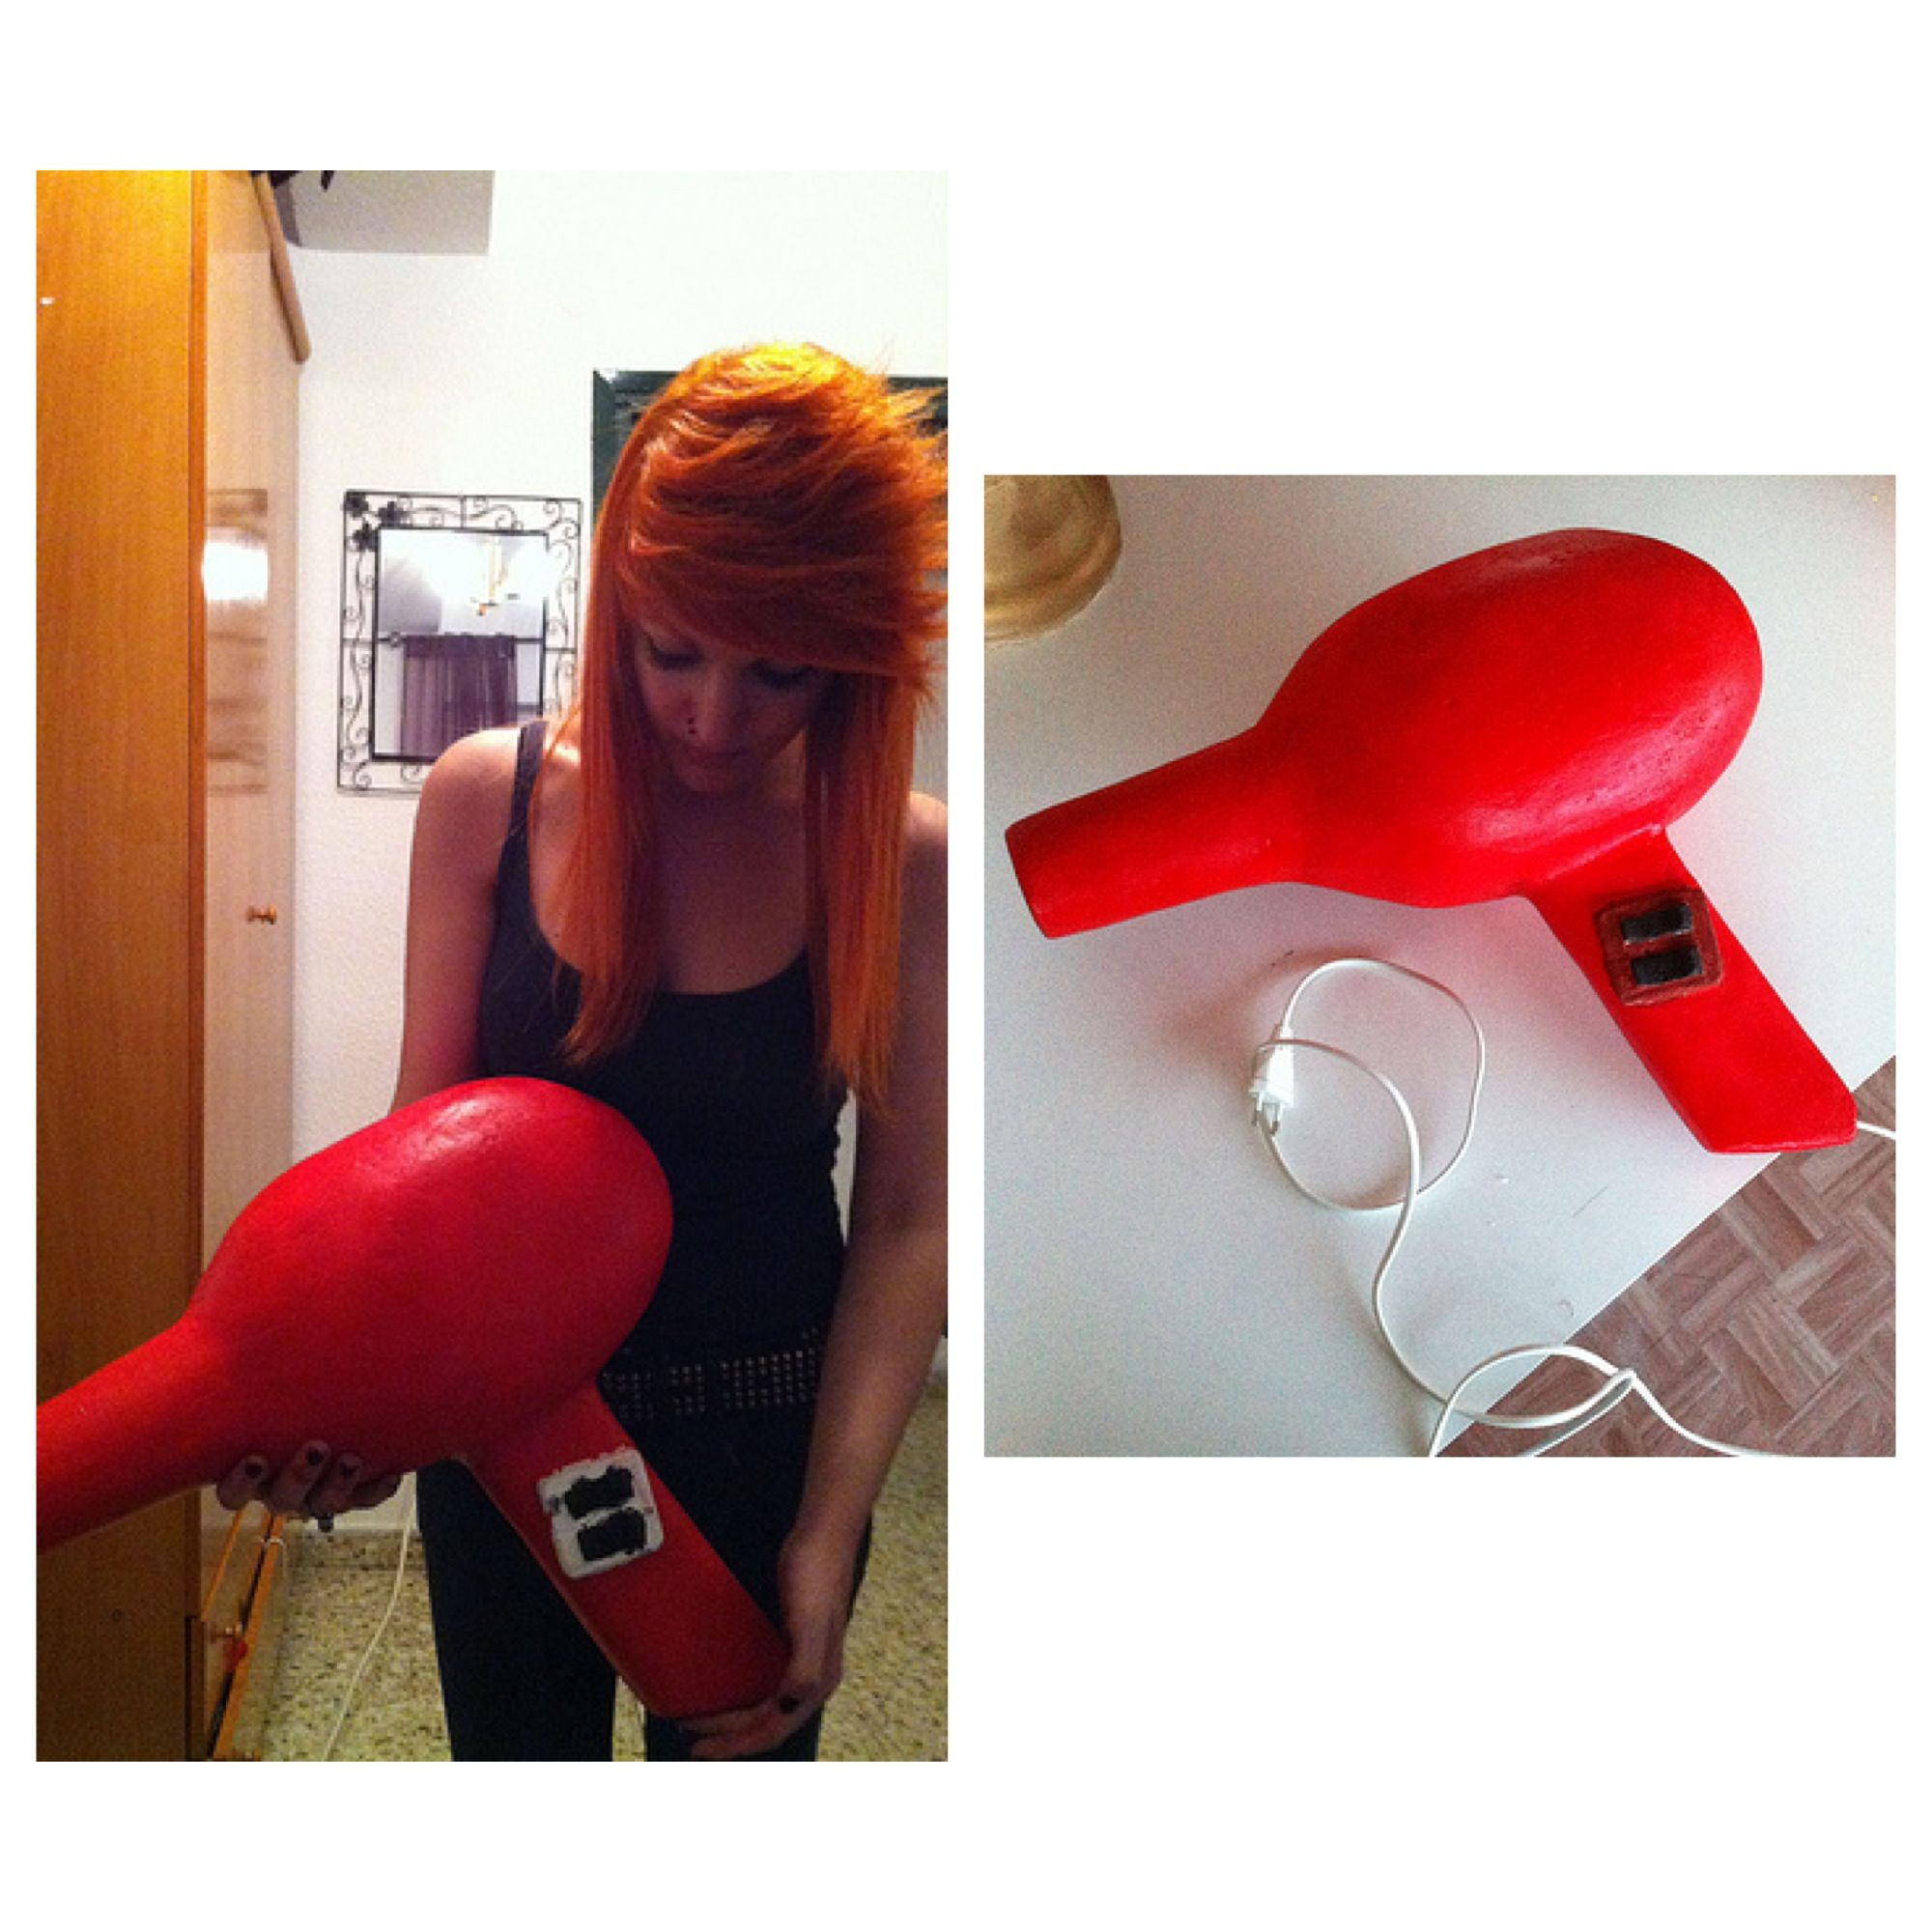 By me KorArt My Massive Hair Dryer Sculpture I made for my